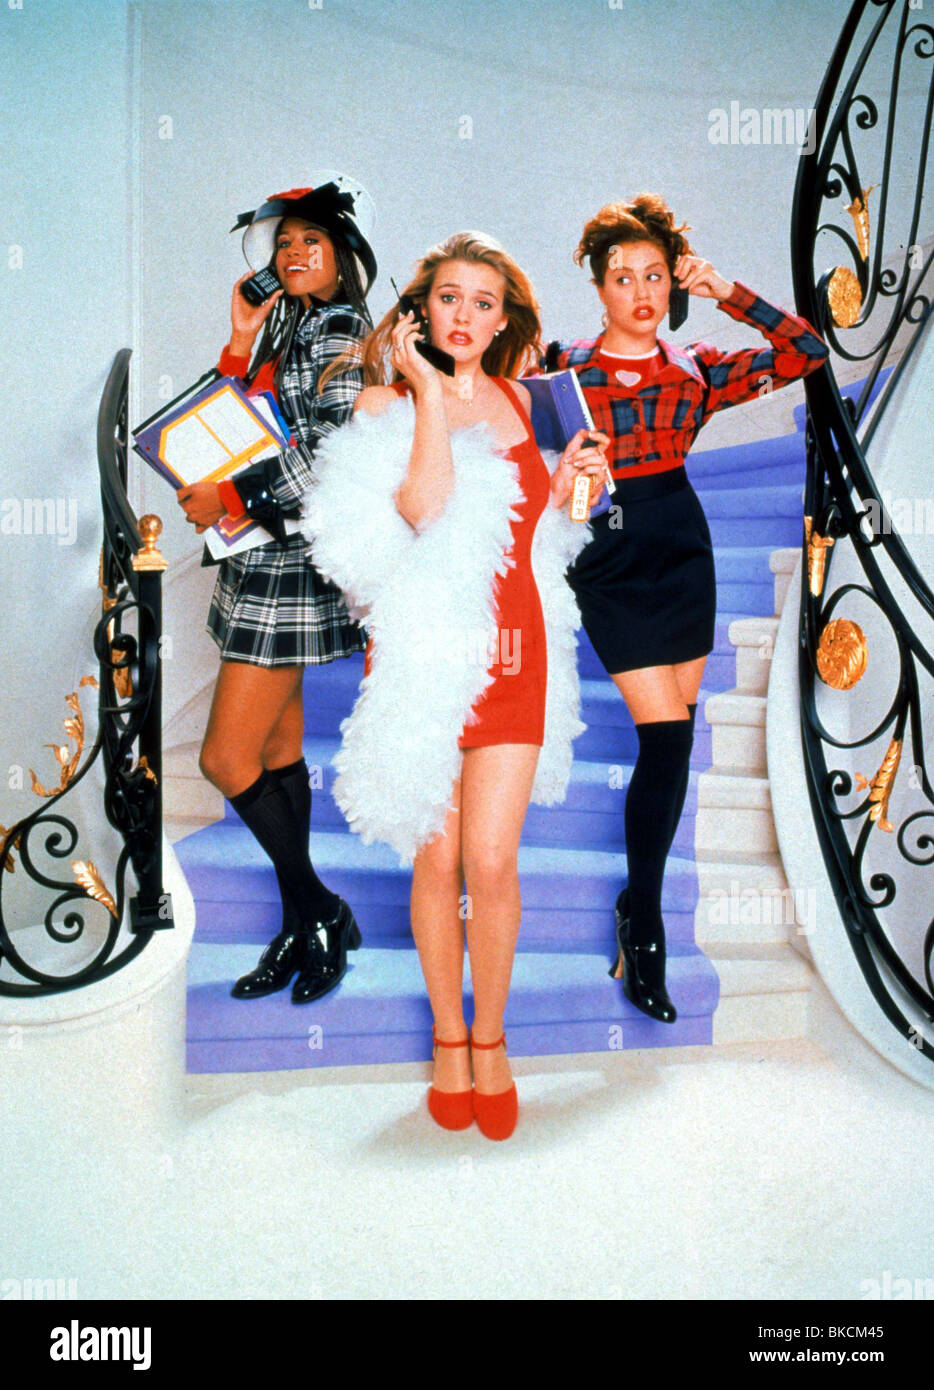 CLUELESS -1995 POSTER - Stock Image